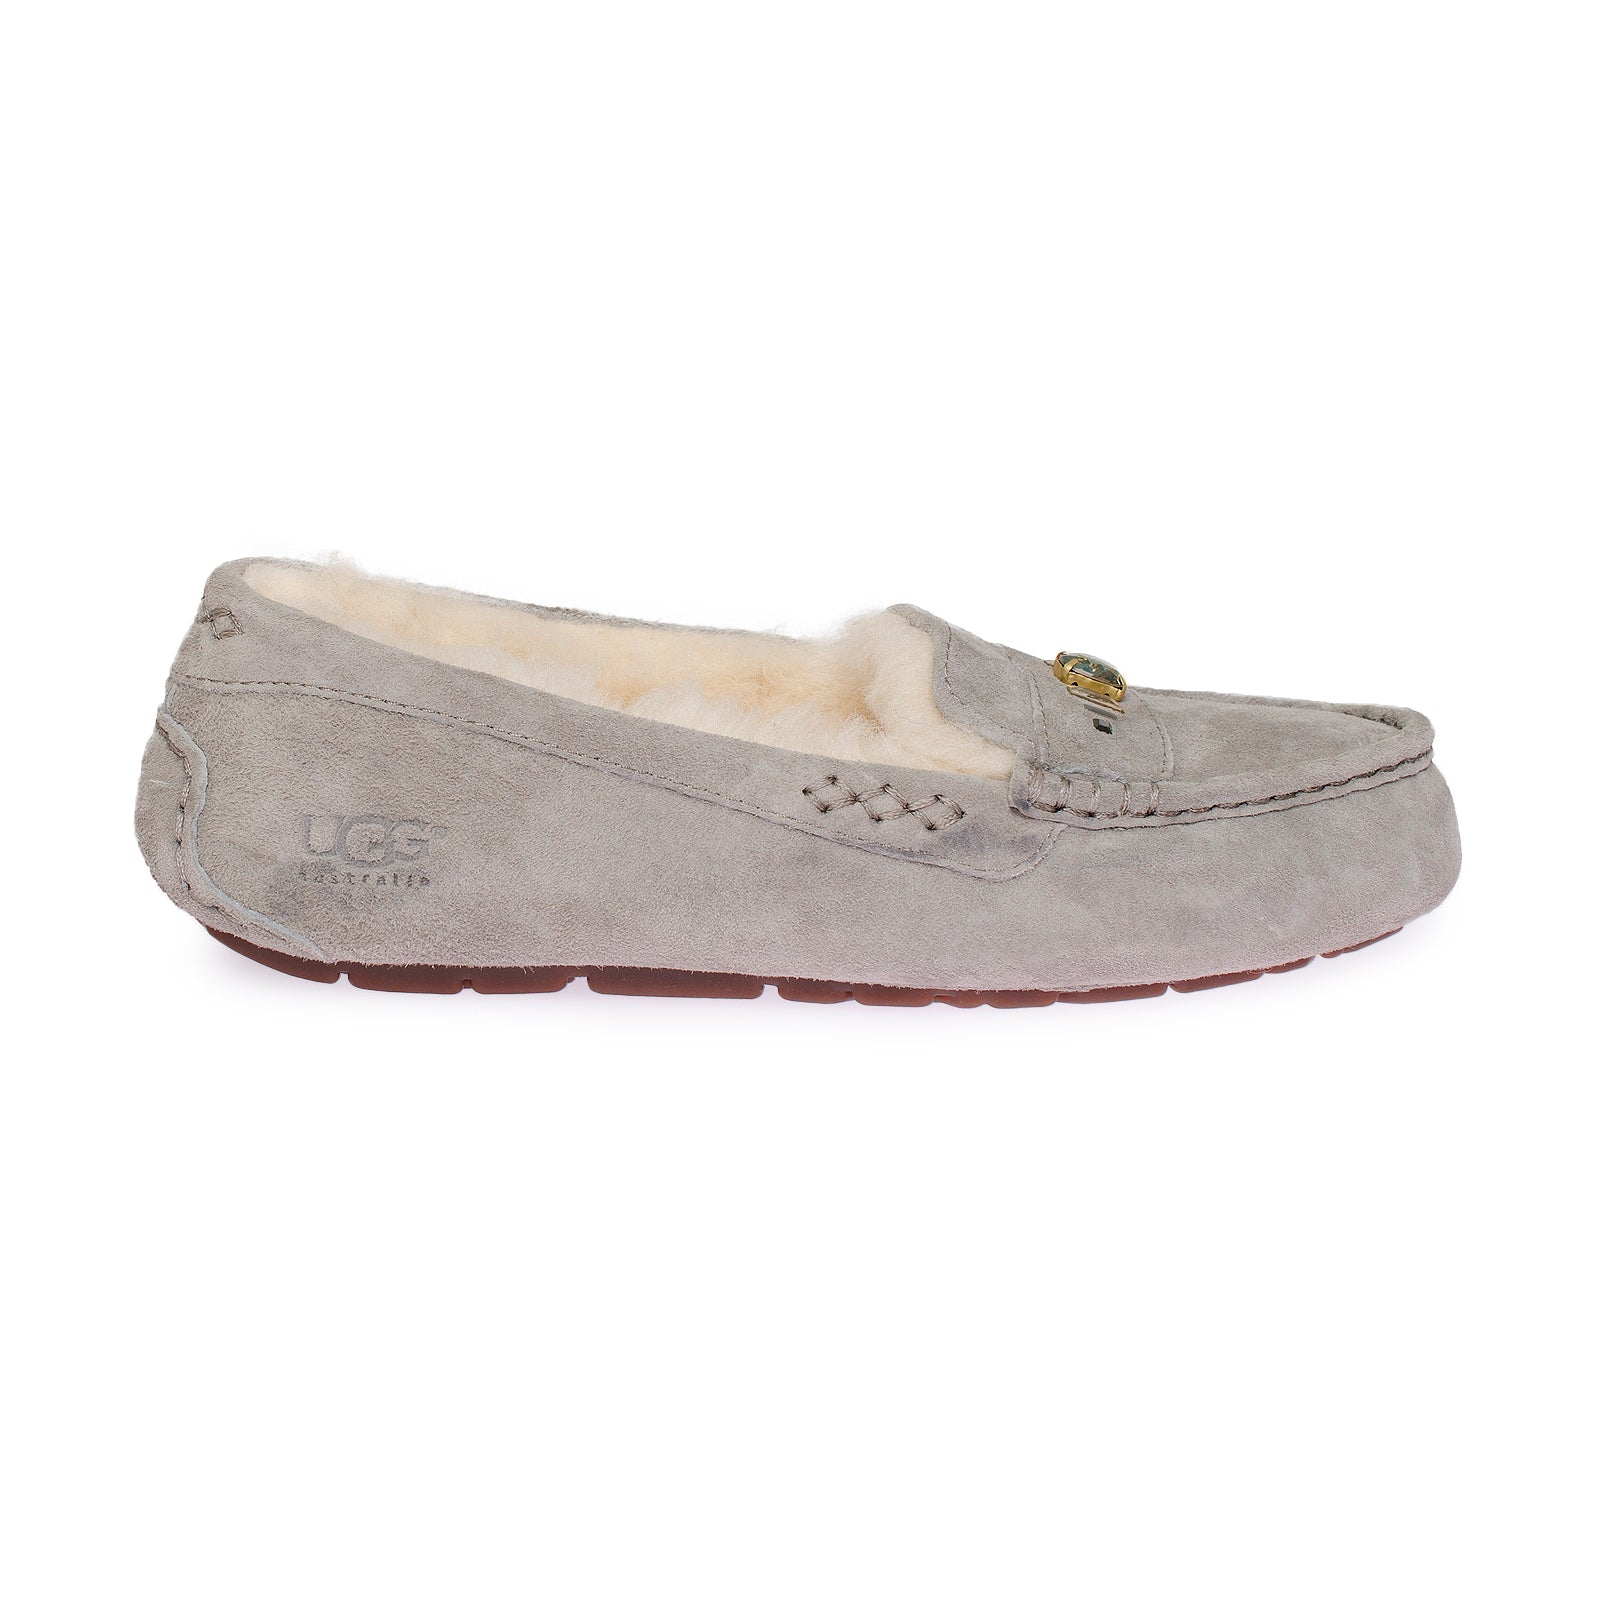 2a1053b41a5 UGG Ansley Chunky Grey Slippers - Women's